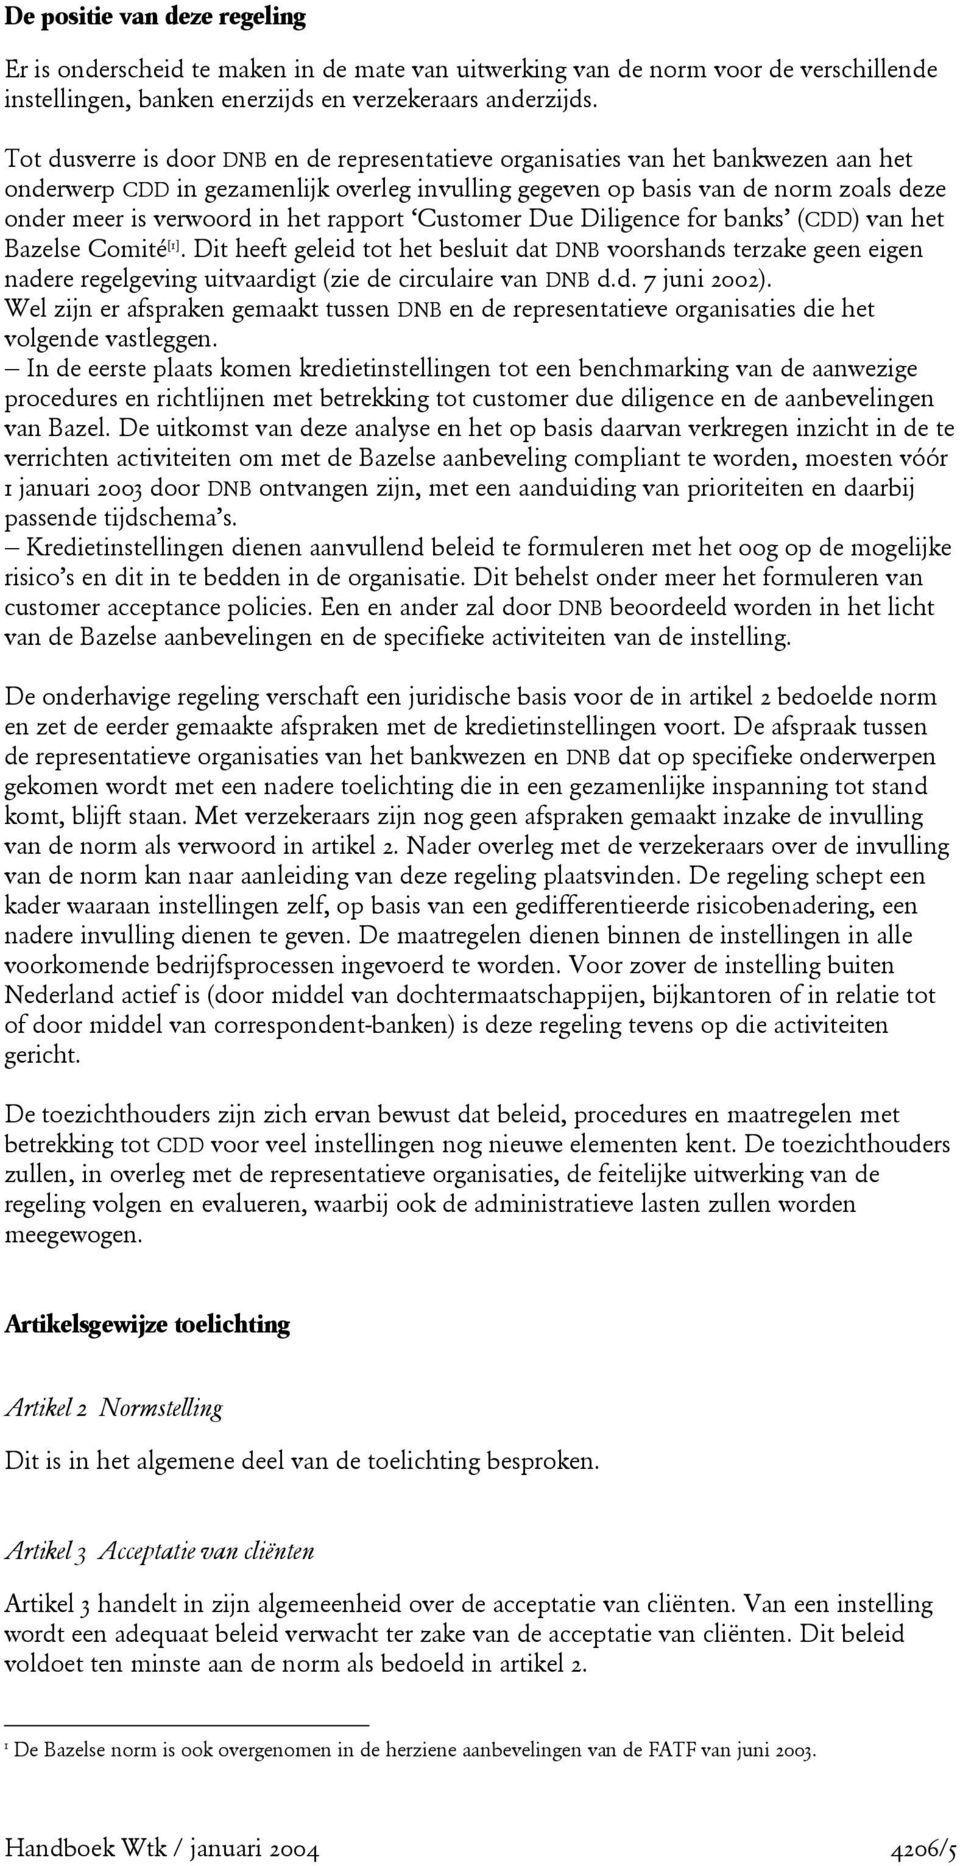 het rapport Customer Due Diligence for banks (CDD) van het Bazelse Comité [].